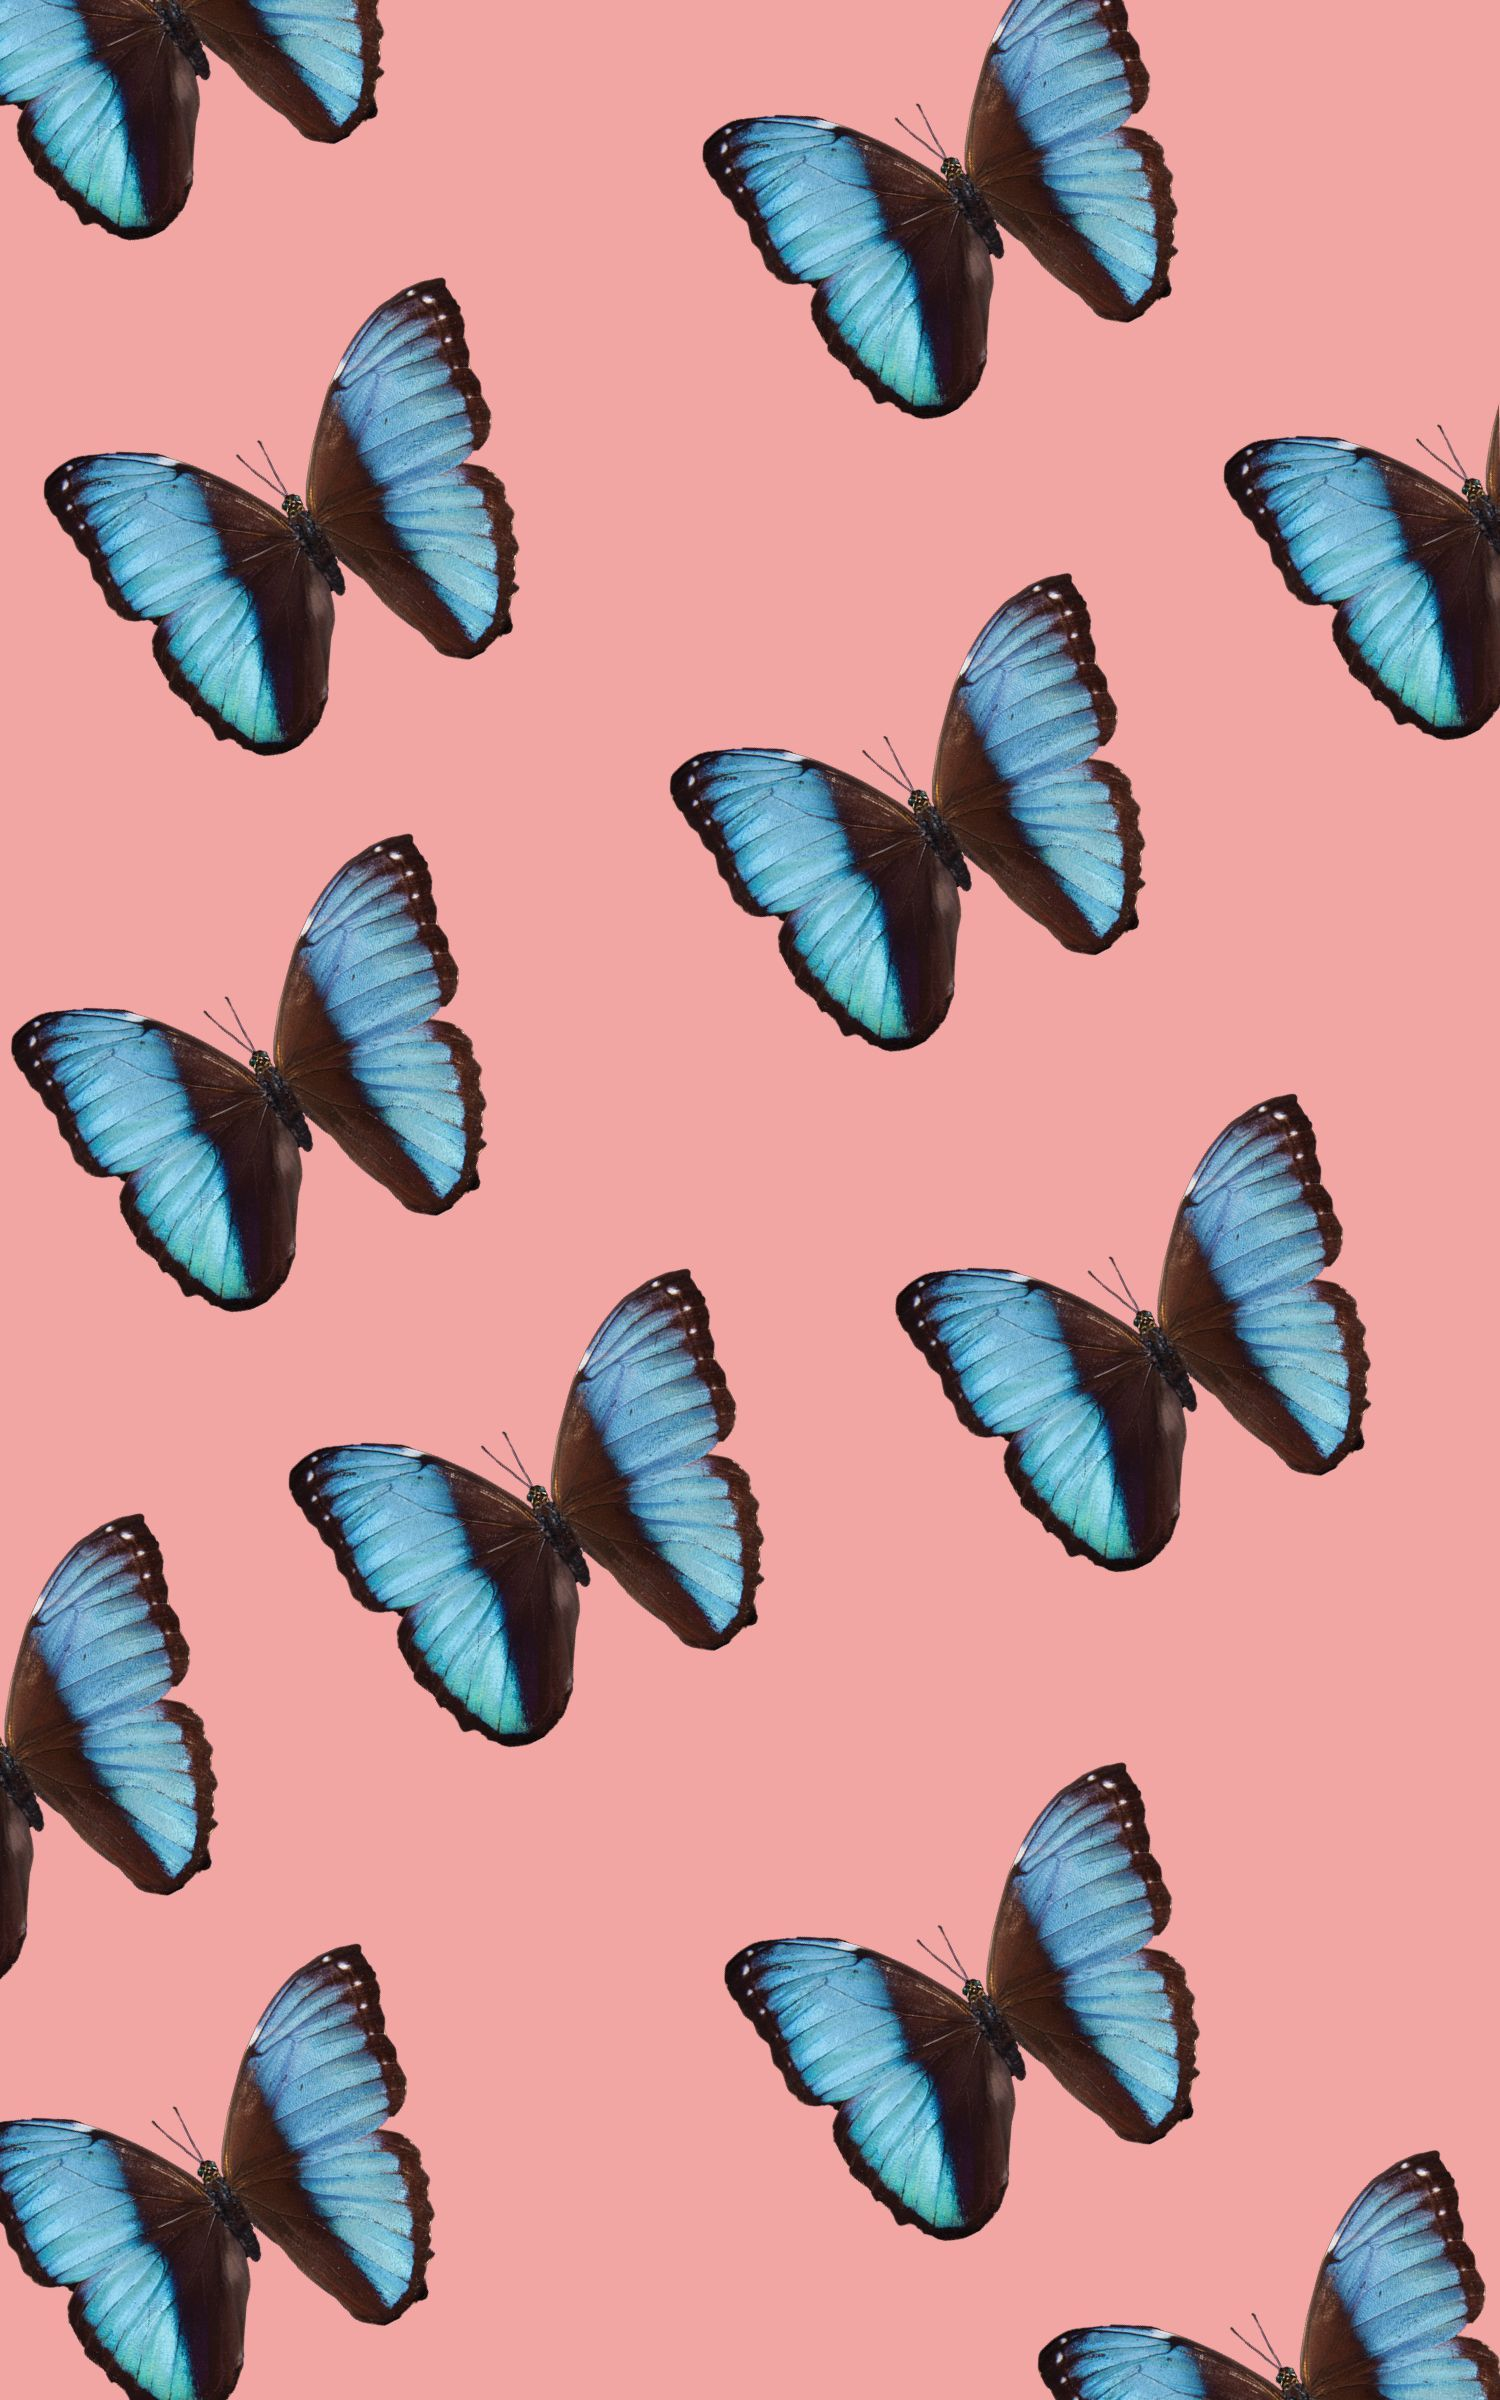 Aesthetic Butterfly Wallpapers , Top Free Aesthetic